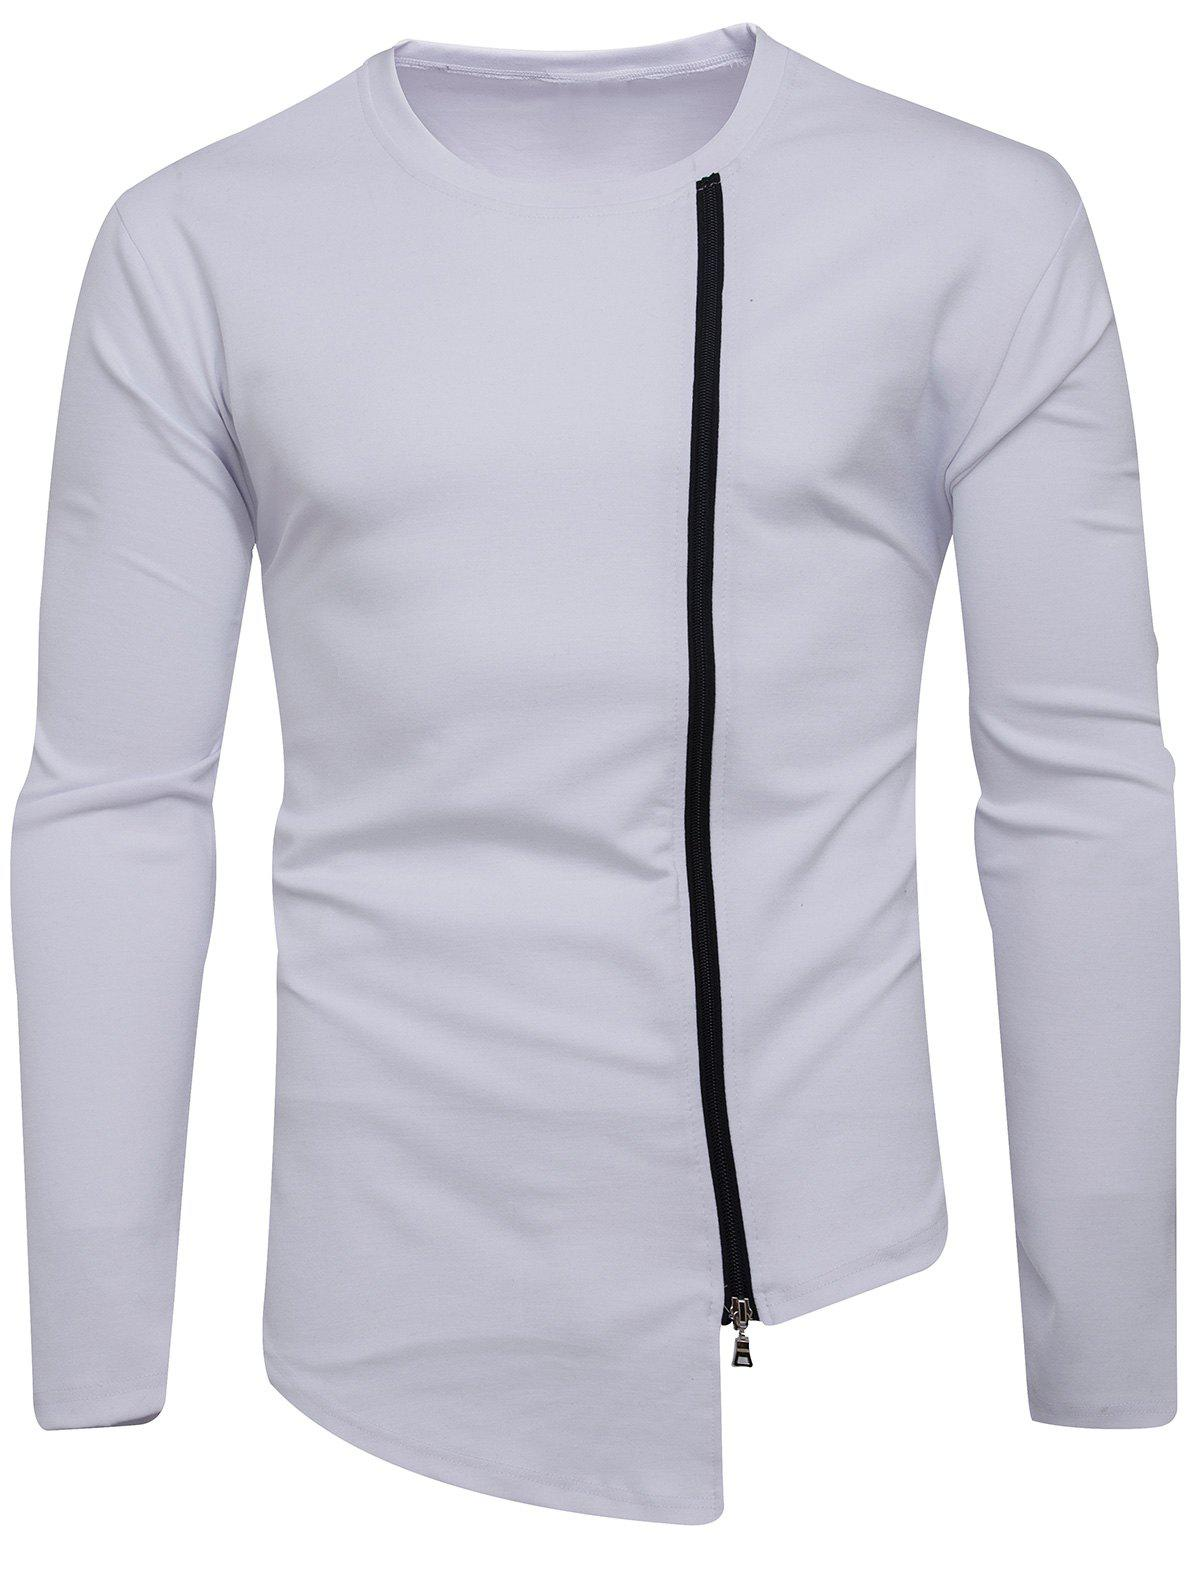 Long Sleeve Oblique Zip Up Asymmetric T-shirt - WHITE M